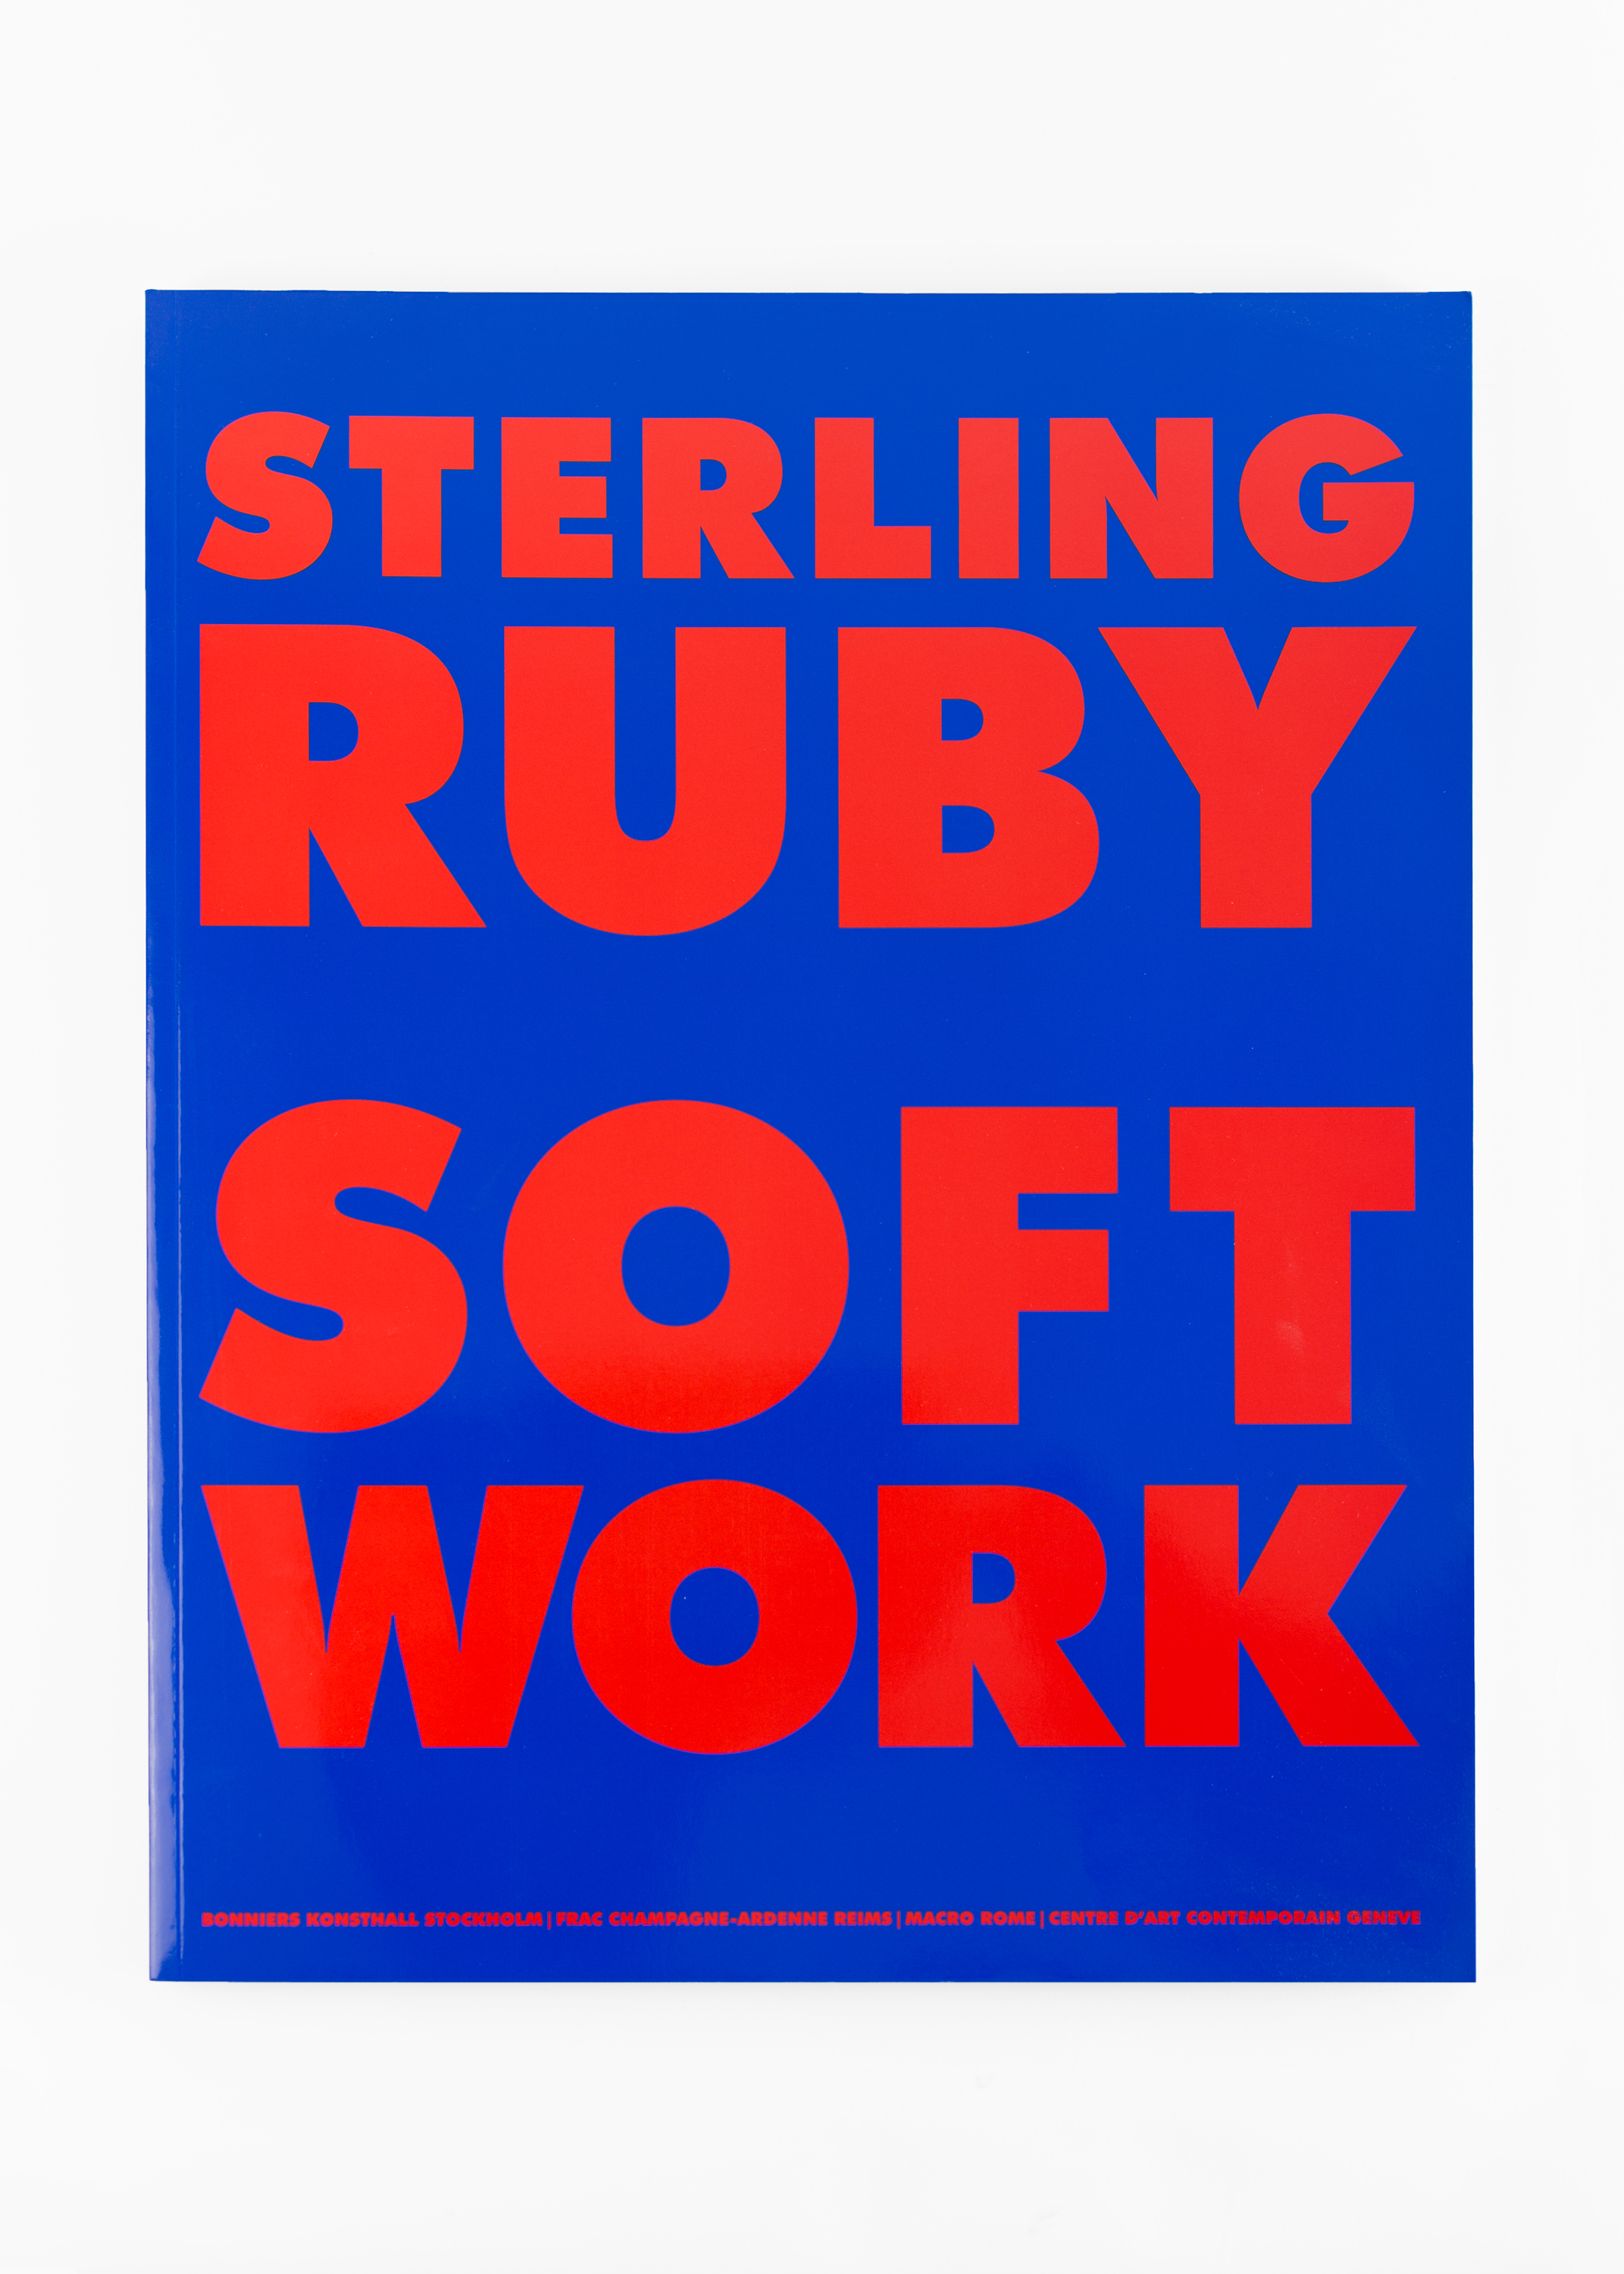 "Sterling Ruby - Softwork</br>150 pages 28 x 38 cm</br>Walther König 2014</br>€50 <a href=""https://www.paypal.com/cgi-bin/webscr?cmd=_s-xclick&amp;hosted_button_id=ZKBGAAETSQJUL"">Add to Cart</a>"